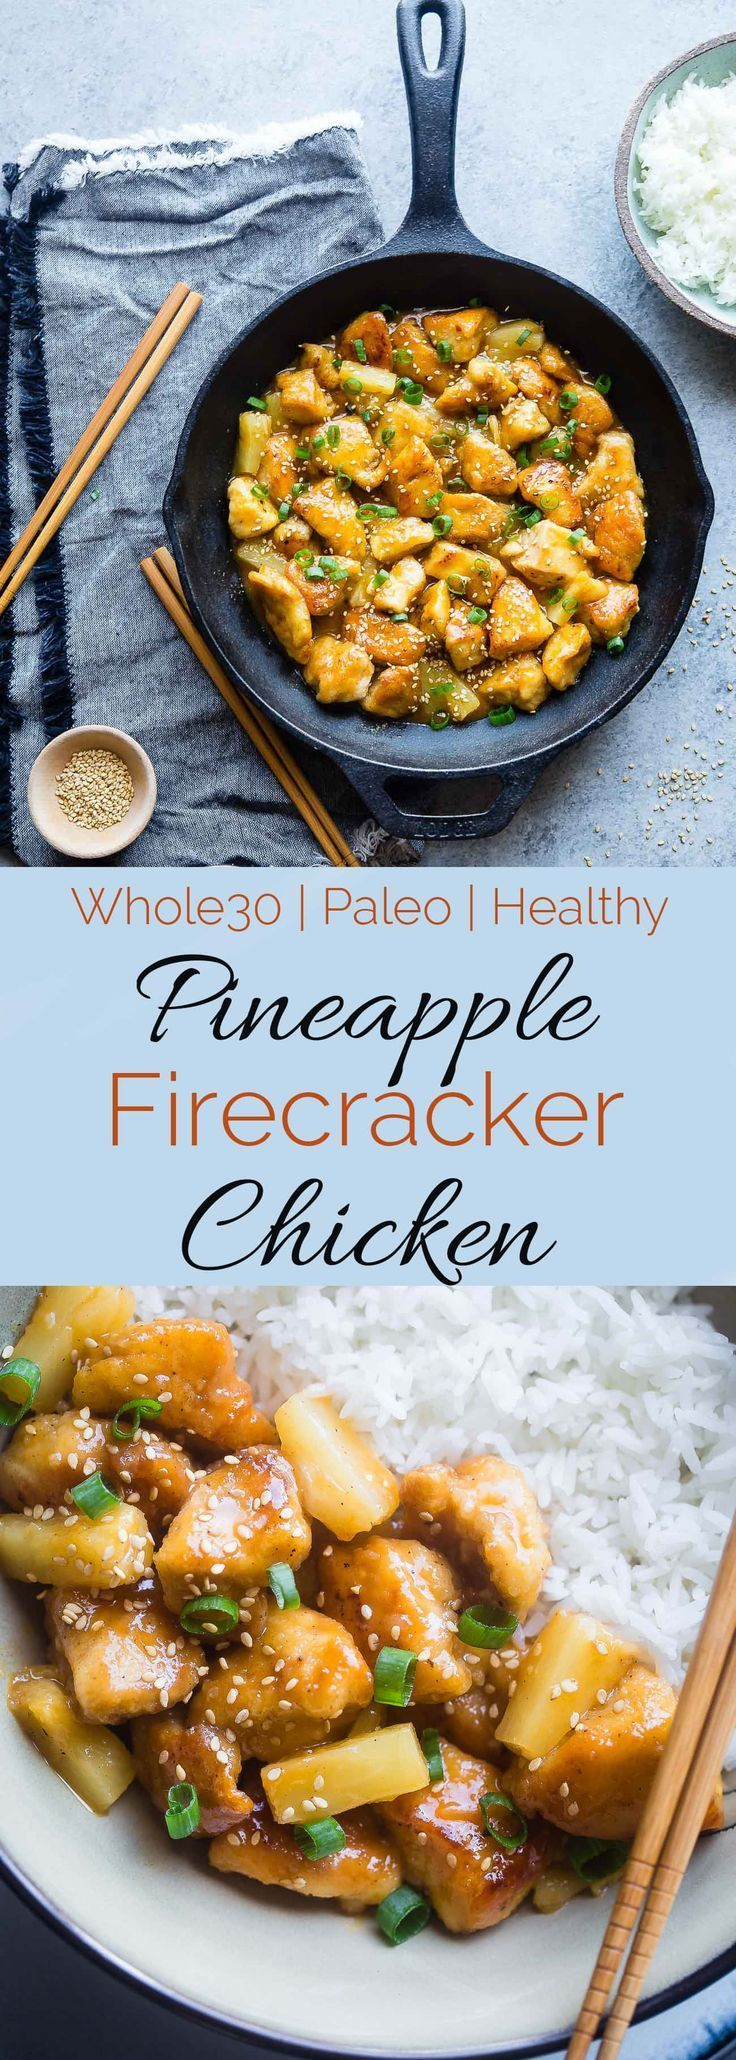 Firecracker Pineapple Chicken. This healthy sweet and spicy chicken is way better than takeout.